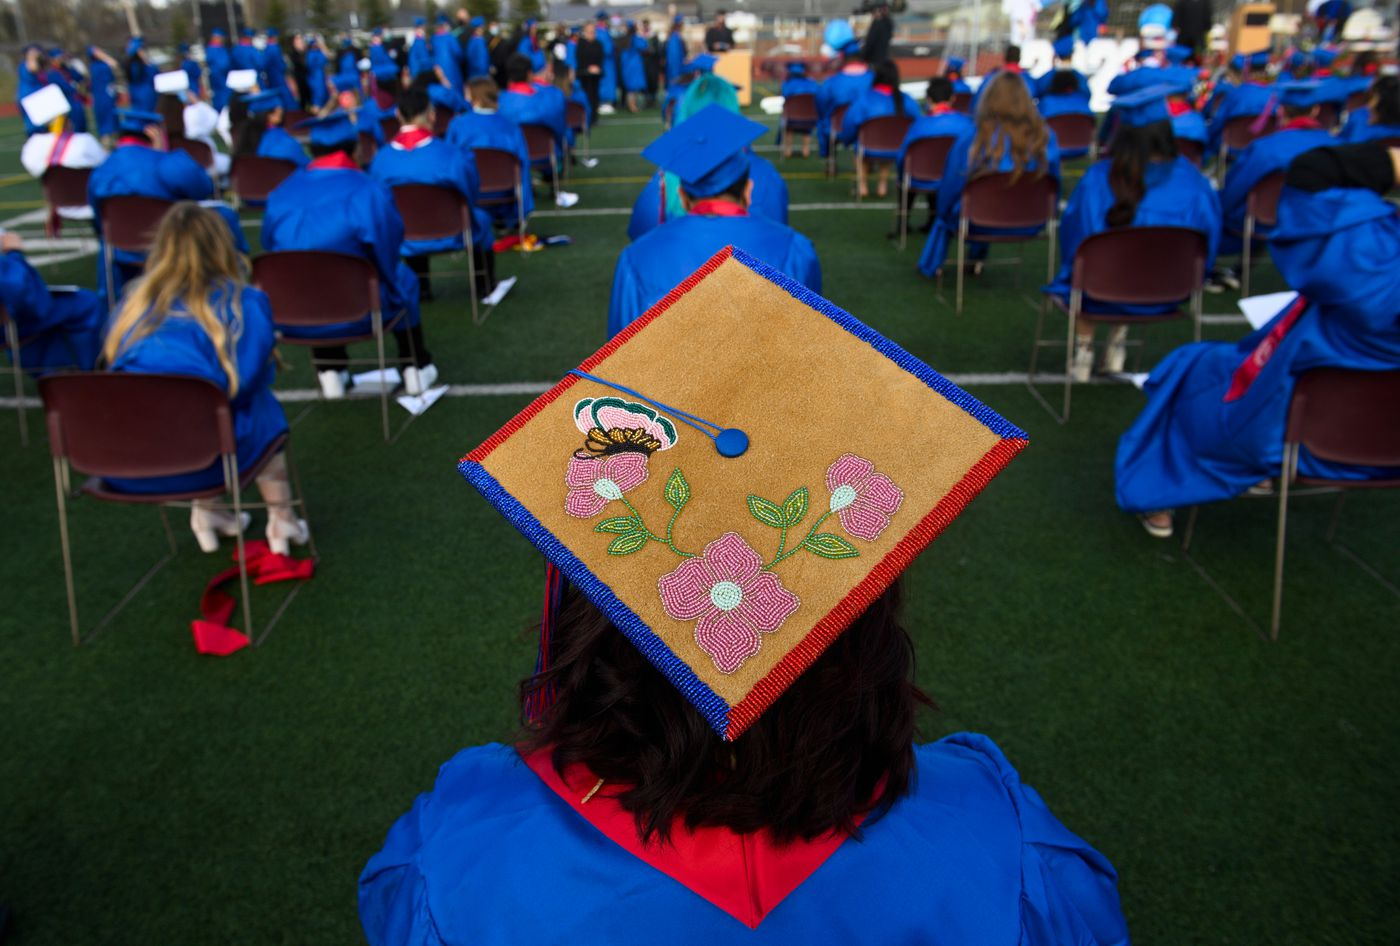 """Ermelina Gonzalez said her graduation cap was beaded by her mother. """"I'm really proud to be Athabaskan,"""" she said after her East High School graduation on May 11, 2021. (Marc Lester / ADN)"""